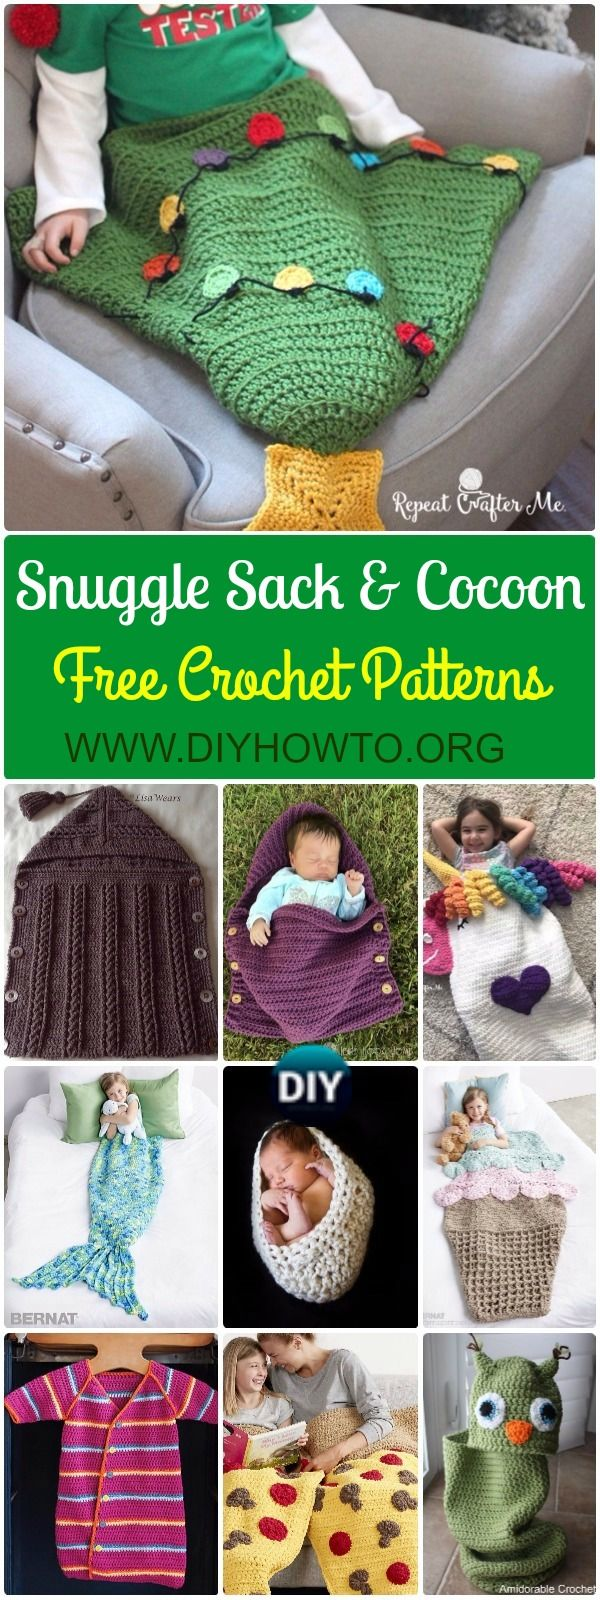 Crochet Snuggle Sack & Cocoon Free Patterns & Tutorials | Baby sack ...